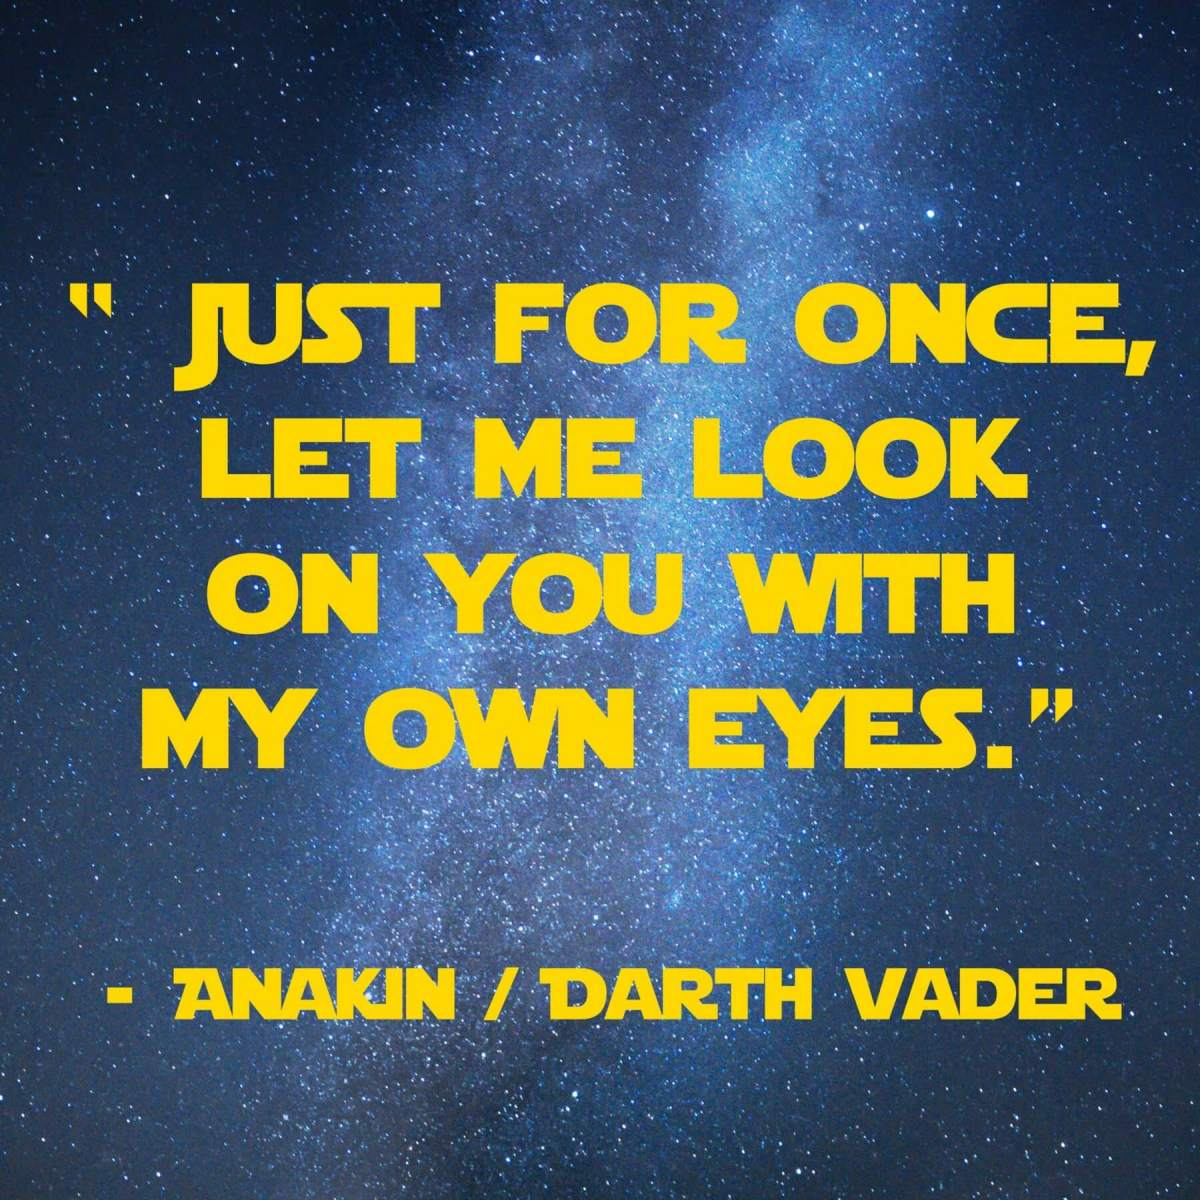 Just for once, let me look on you with my own eyes | 31 Memorable Star Wars Quotes for Geeks